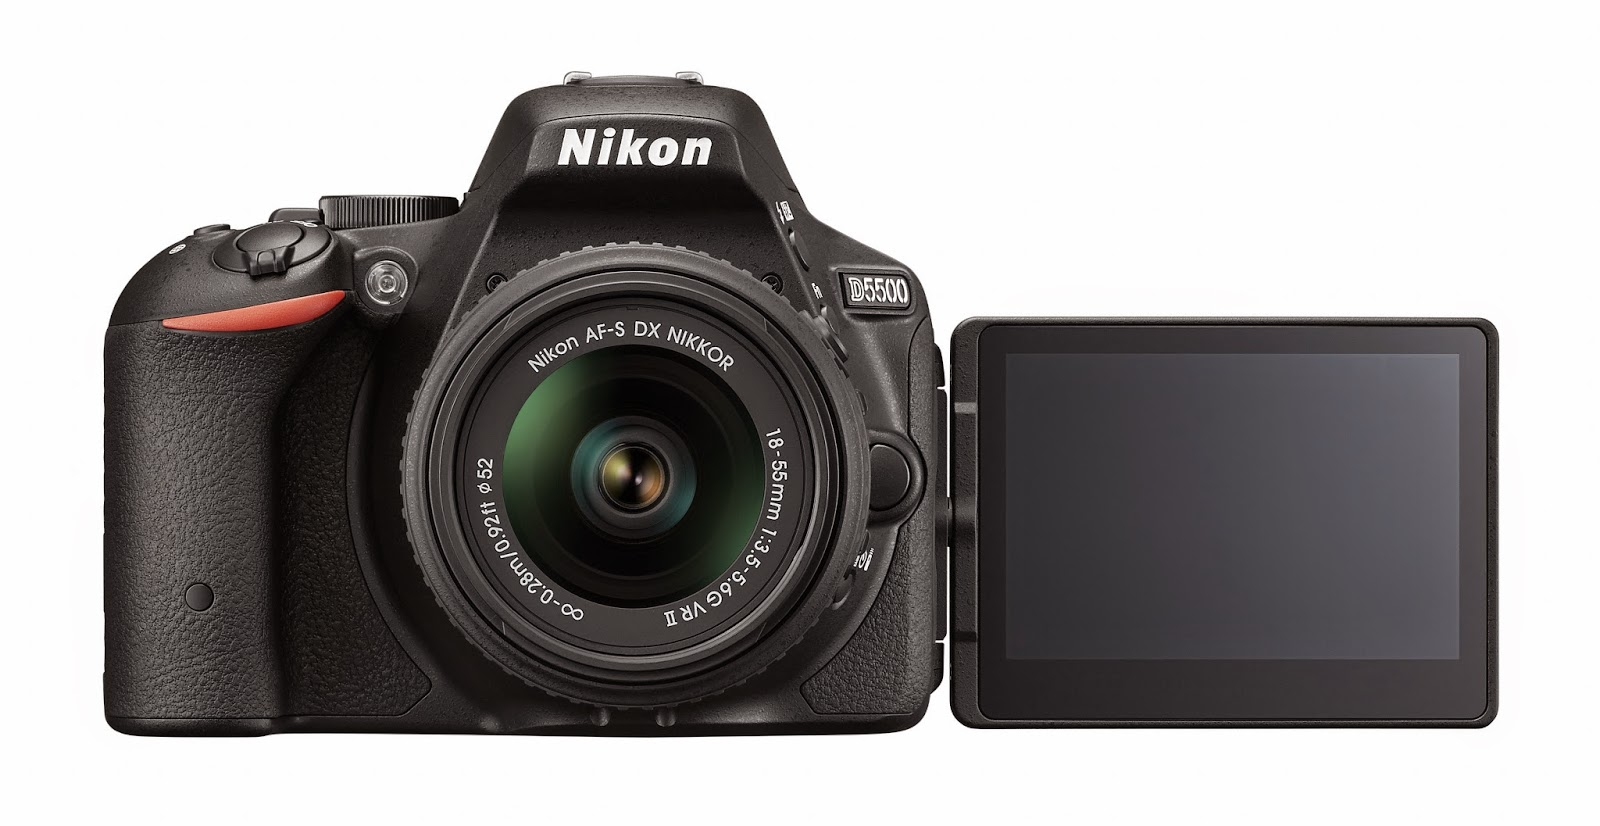 Nikon D5500, new Nikon camera, Nikon DSLR, Full-HD video, Wi-Fi, creative filters, Nikon D5500 specs, Nikon D5500 review, nikon lens,